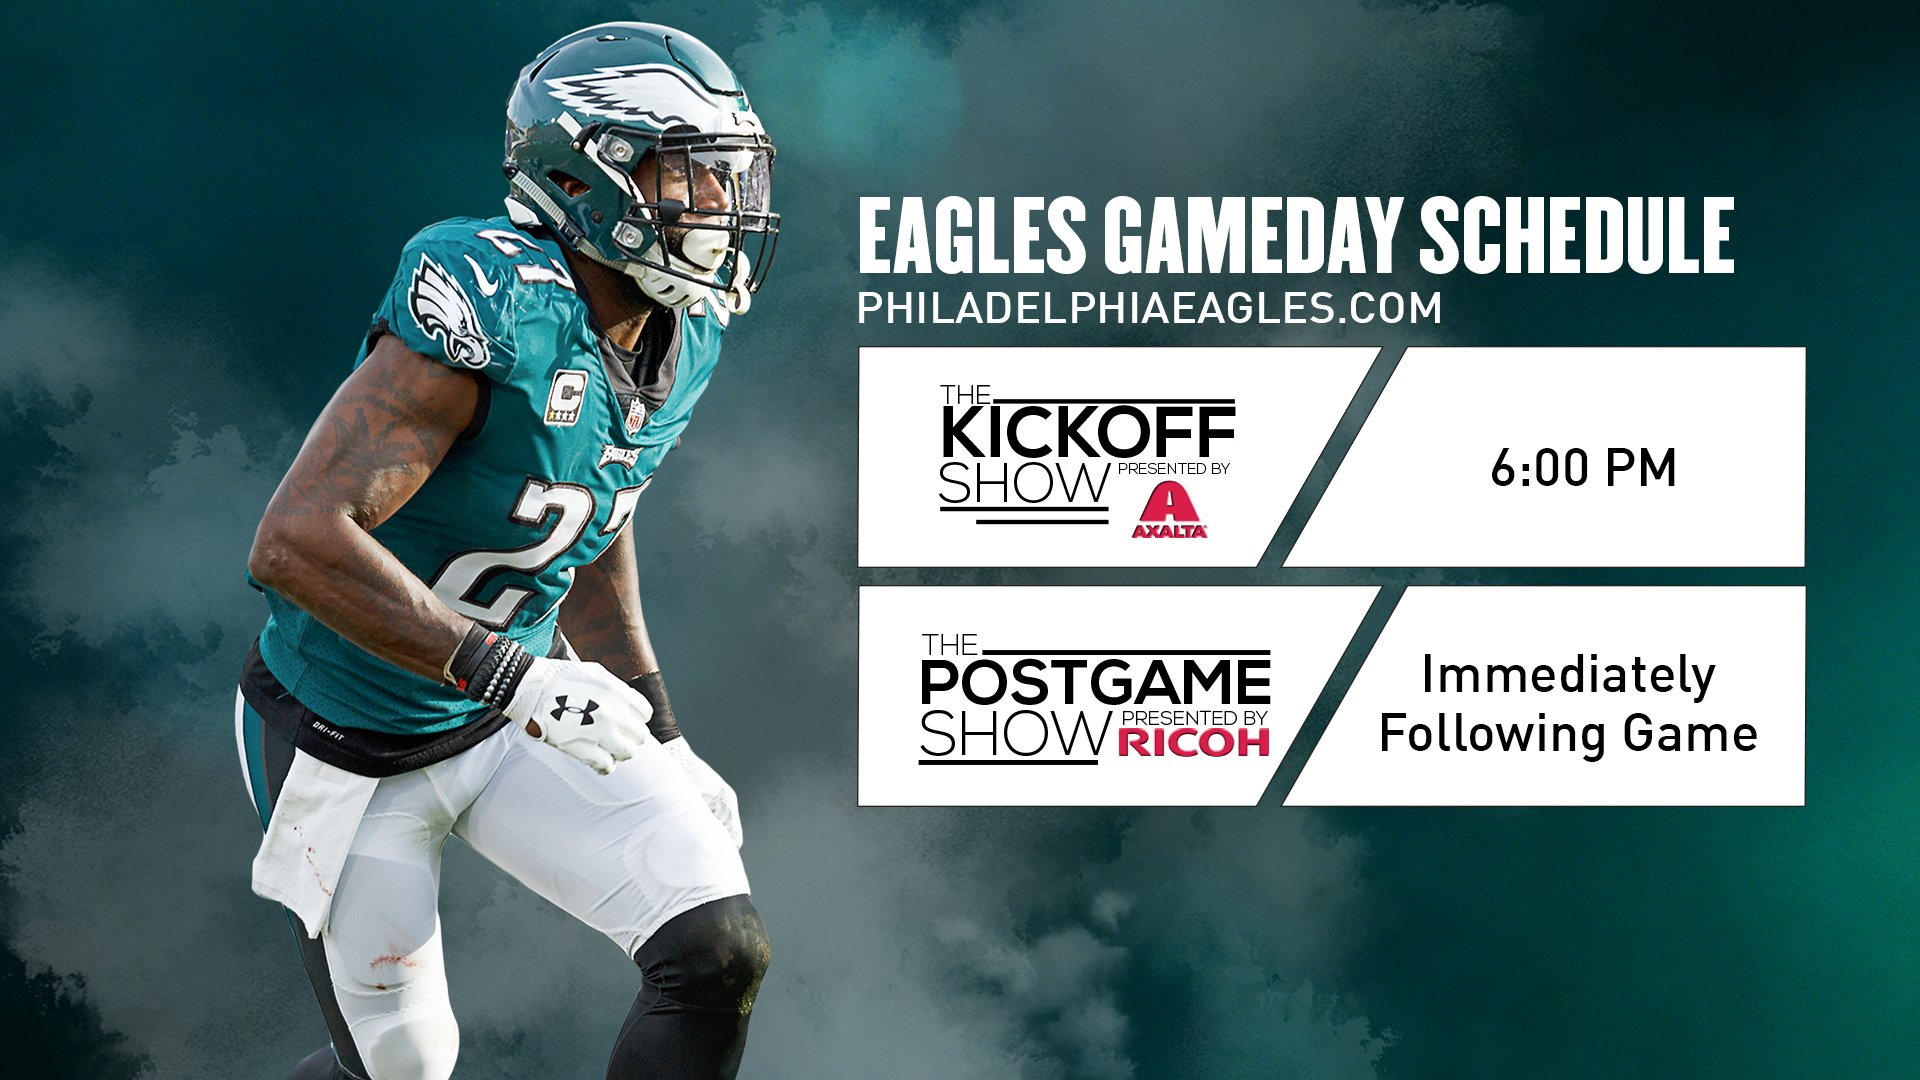 Tonight's #MINvsPHI Gameday schedule.  #FlyEaglesFly https://t.co/36yNpaQIOU